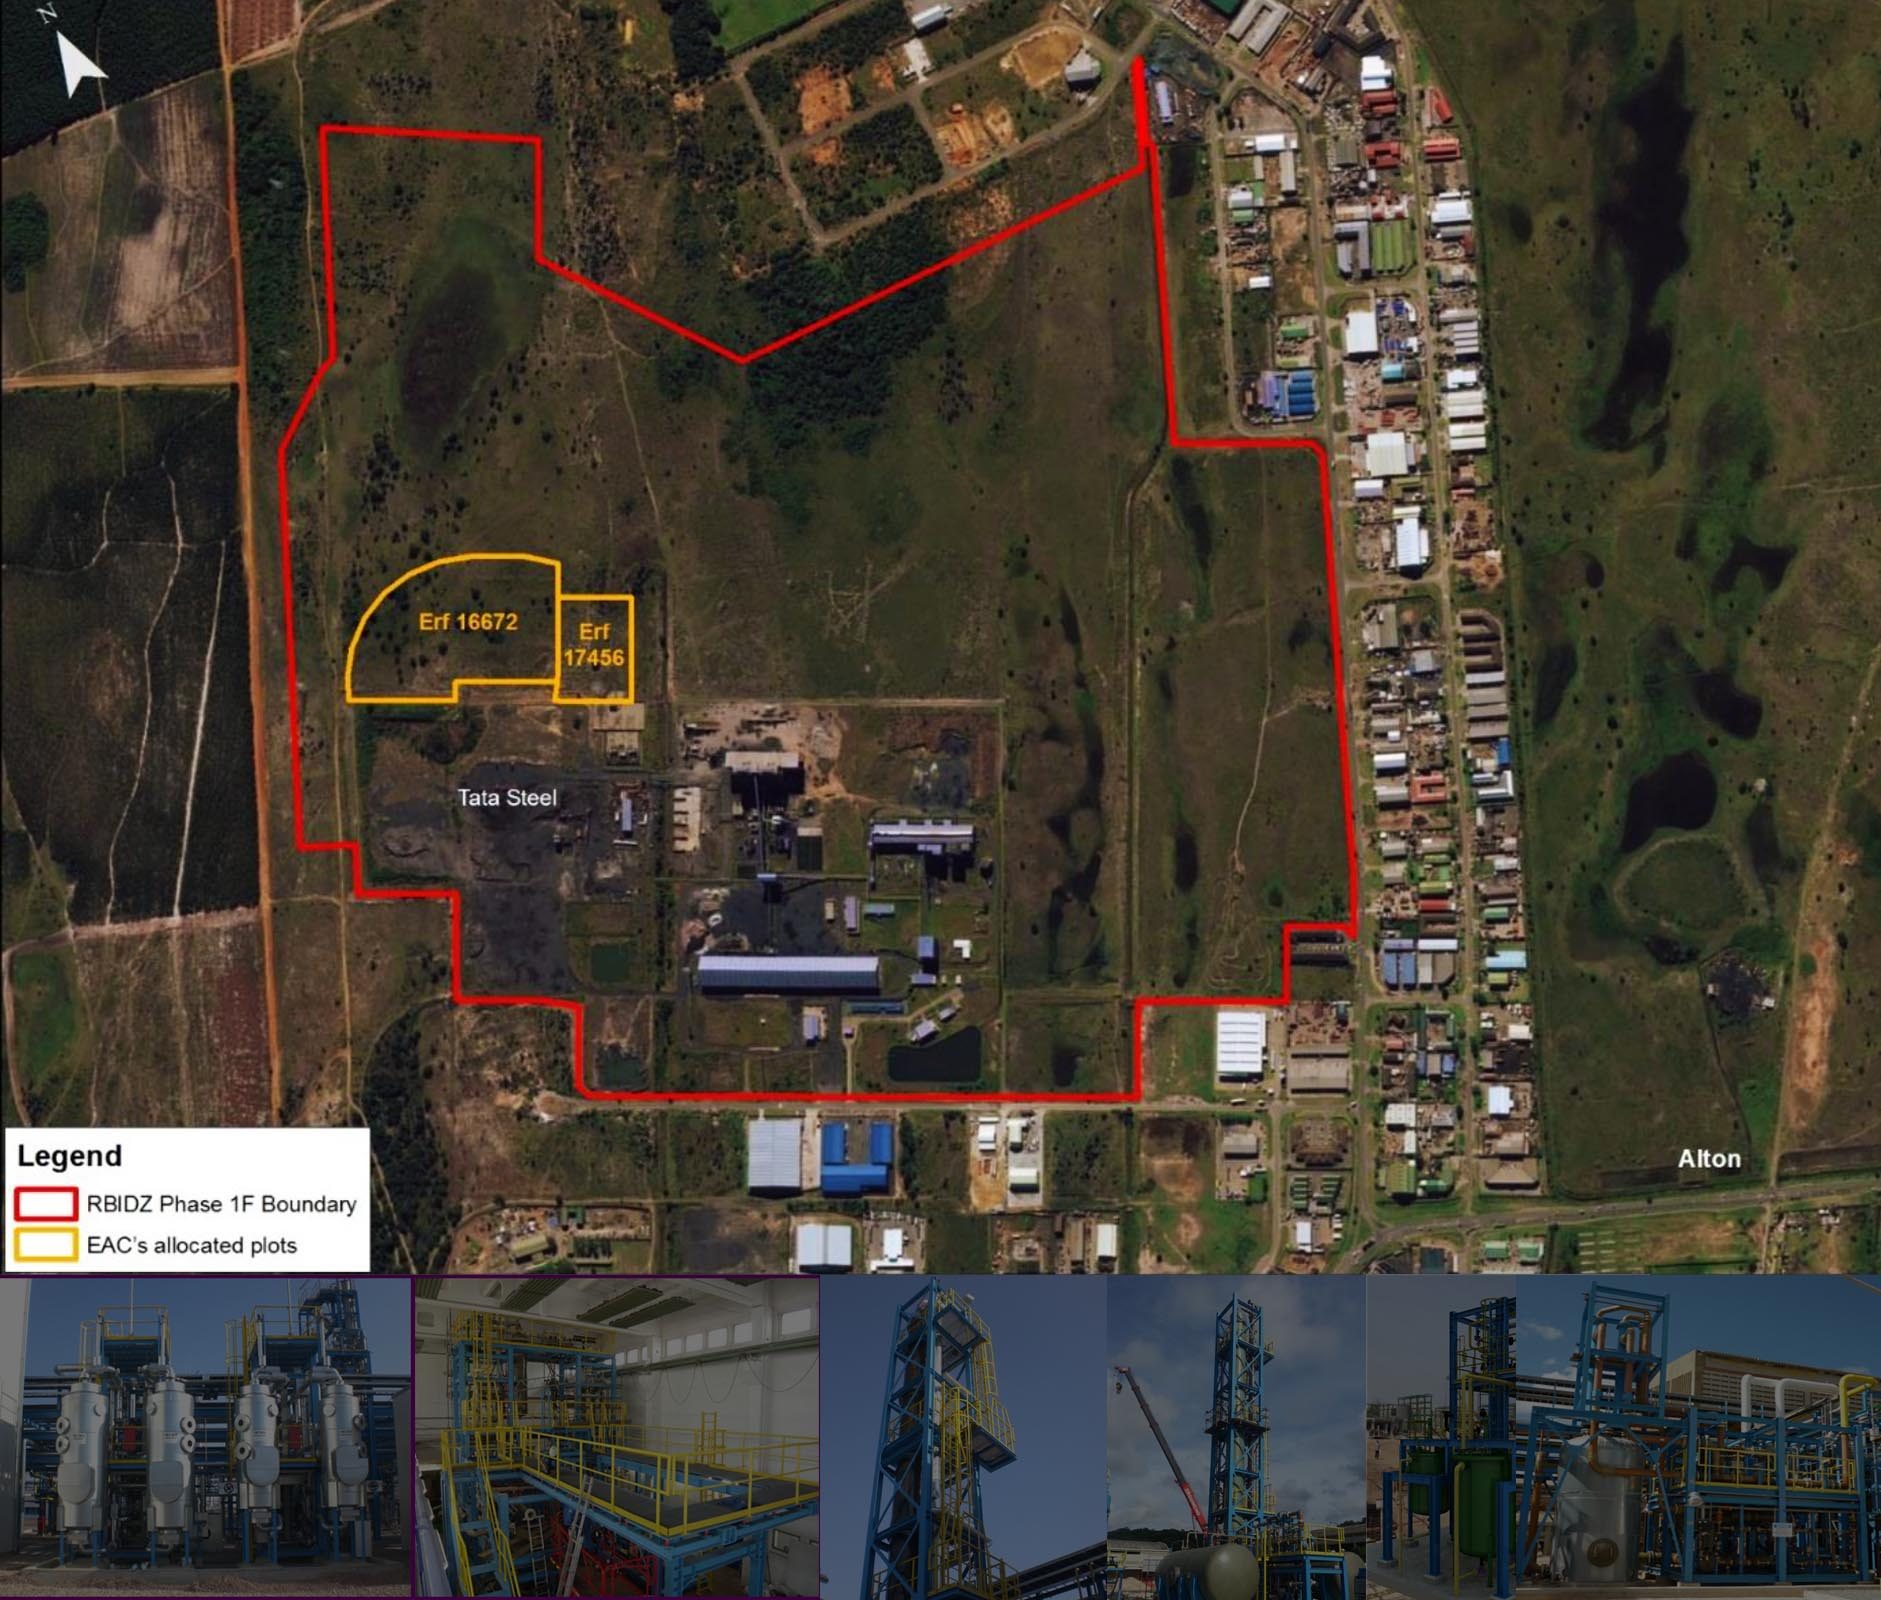 eac Richards Bay Chlor alkali plant2